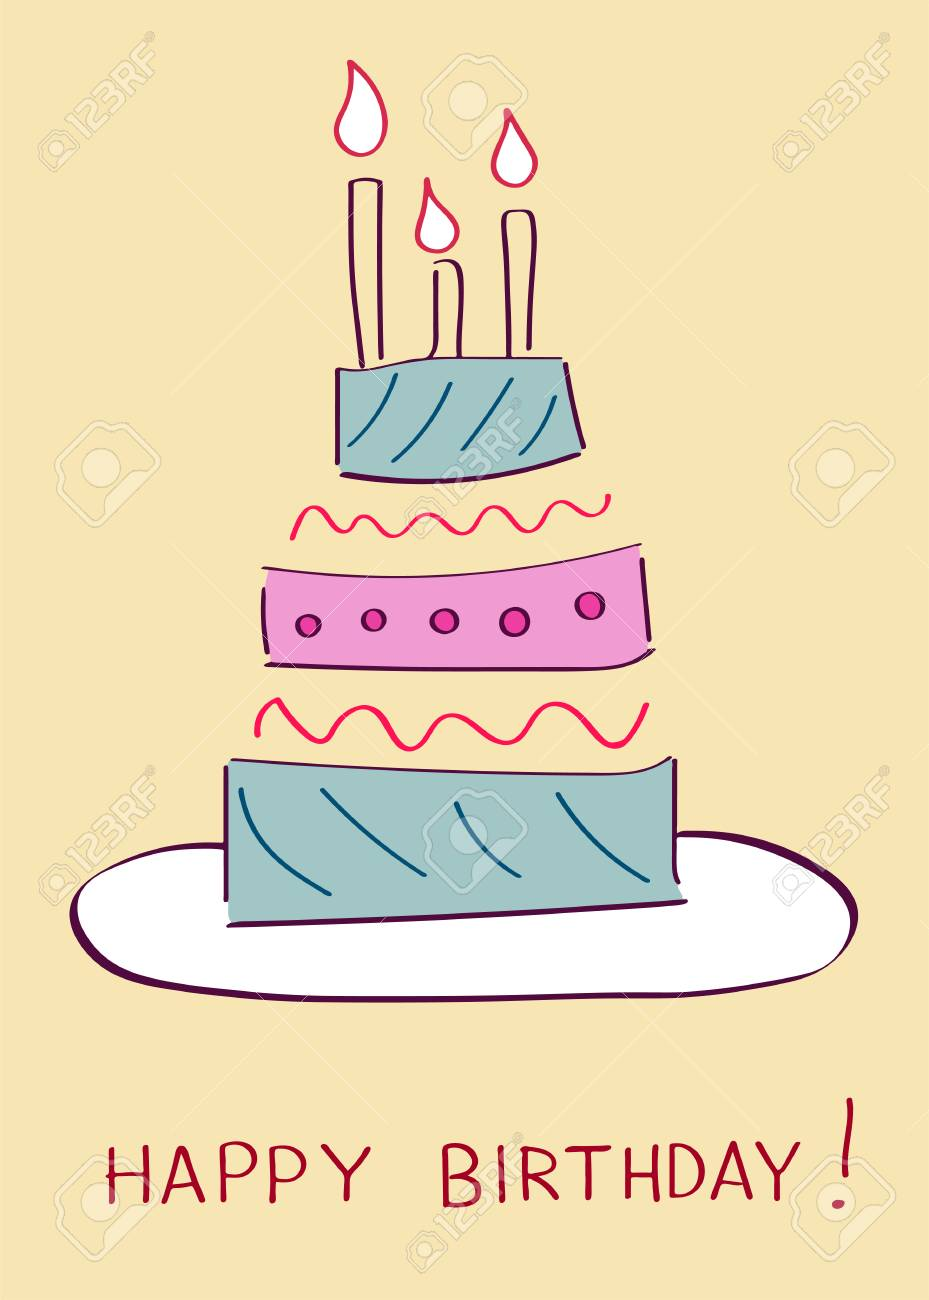 Birthday Cake On Greeting Card Template Vector Illustration. Royalty ...